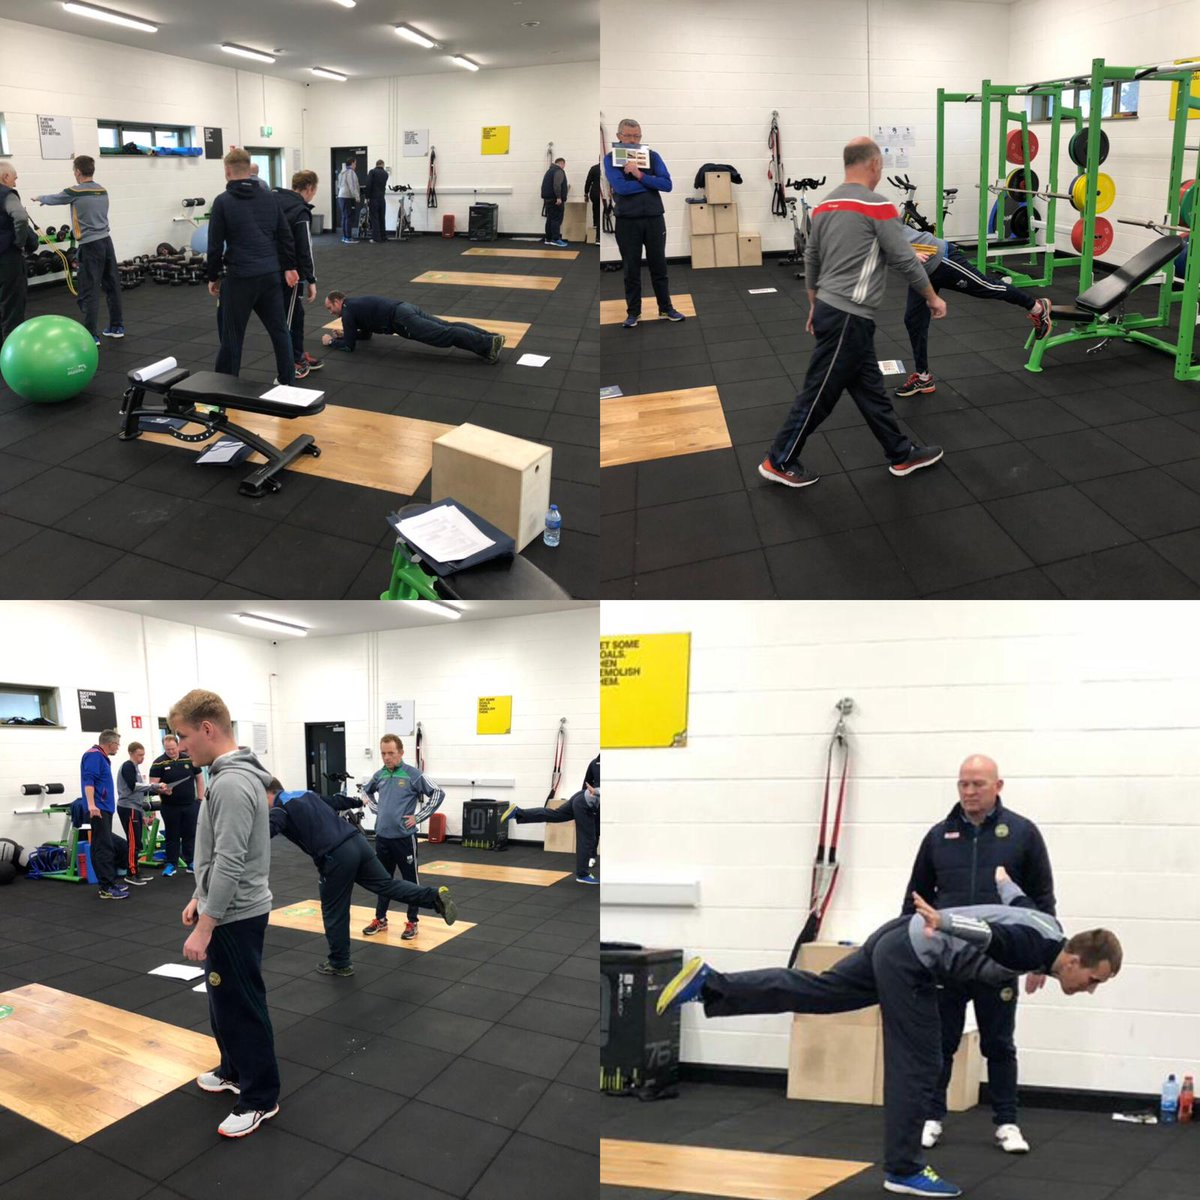 test Twitter Media - Well done to the 15 Offaly coaches who have now completed their Youth RT course assessments. https://t.co/i2lVPPoVfc